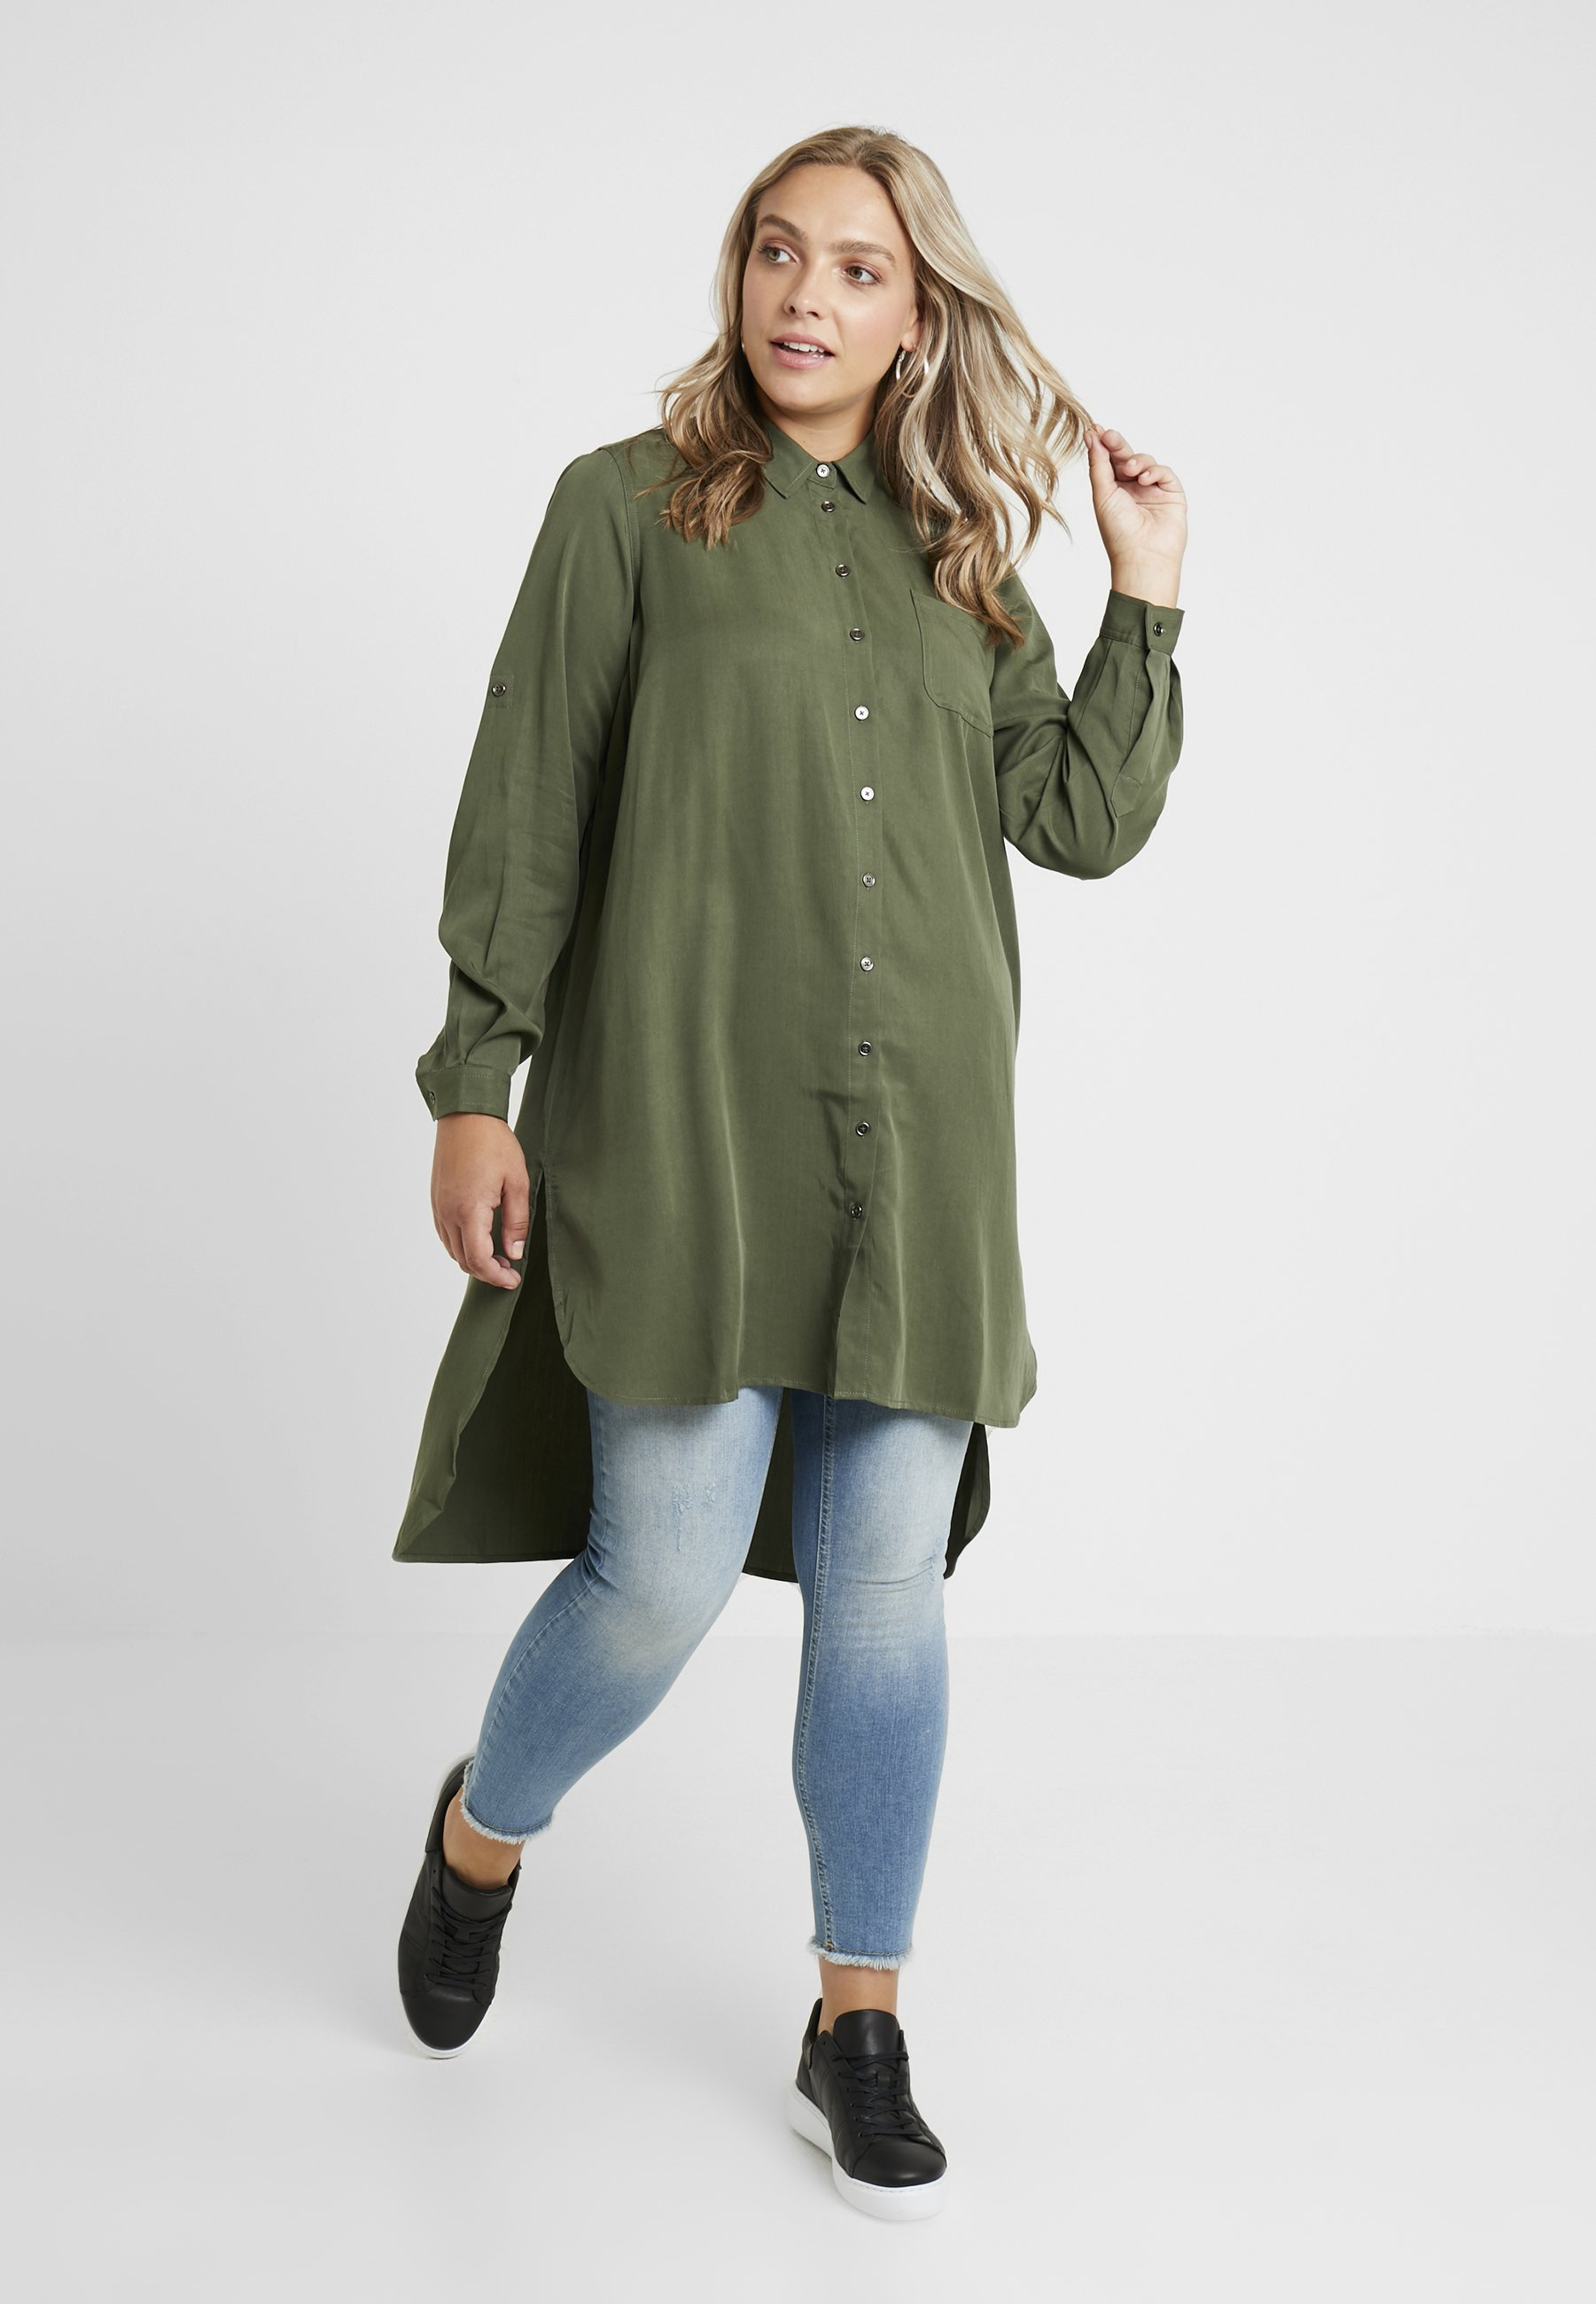 Zizzi JACACIA - Camisa rifle green